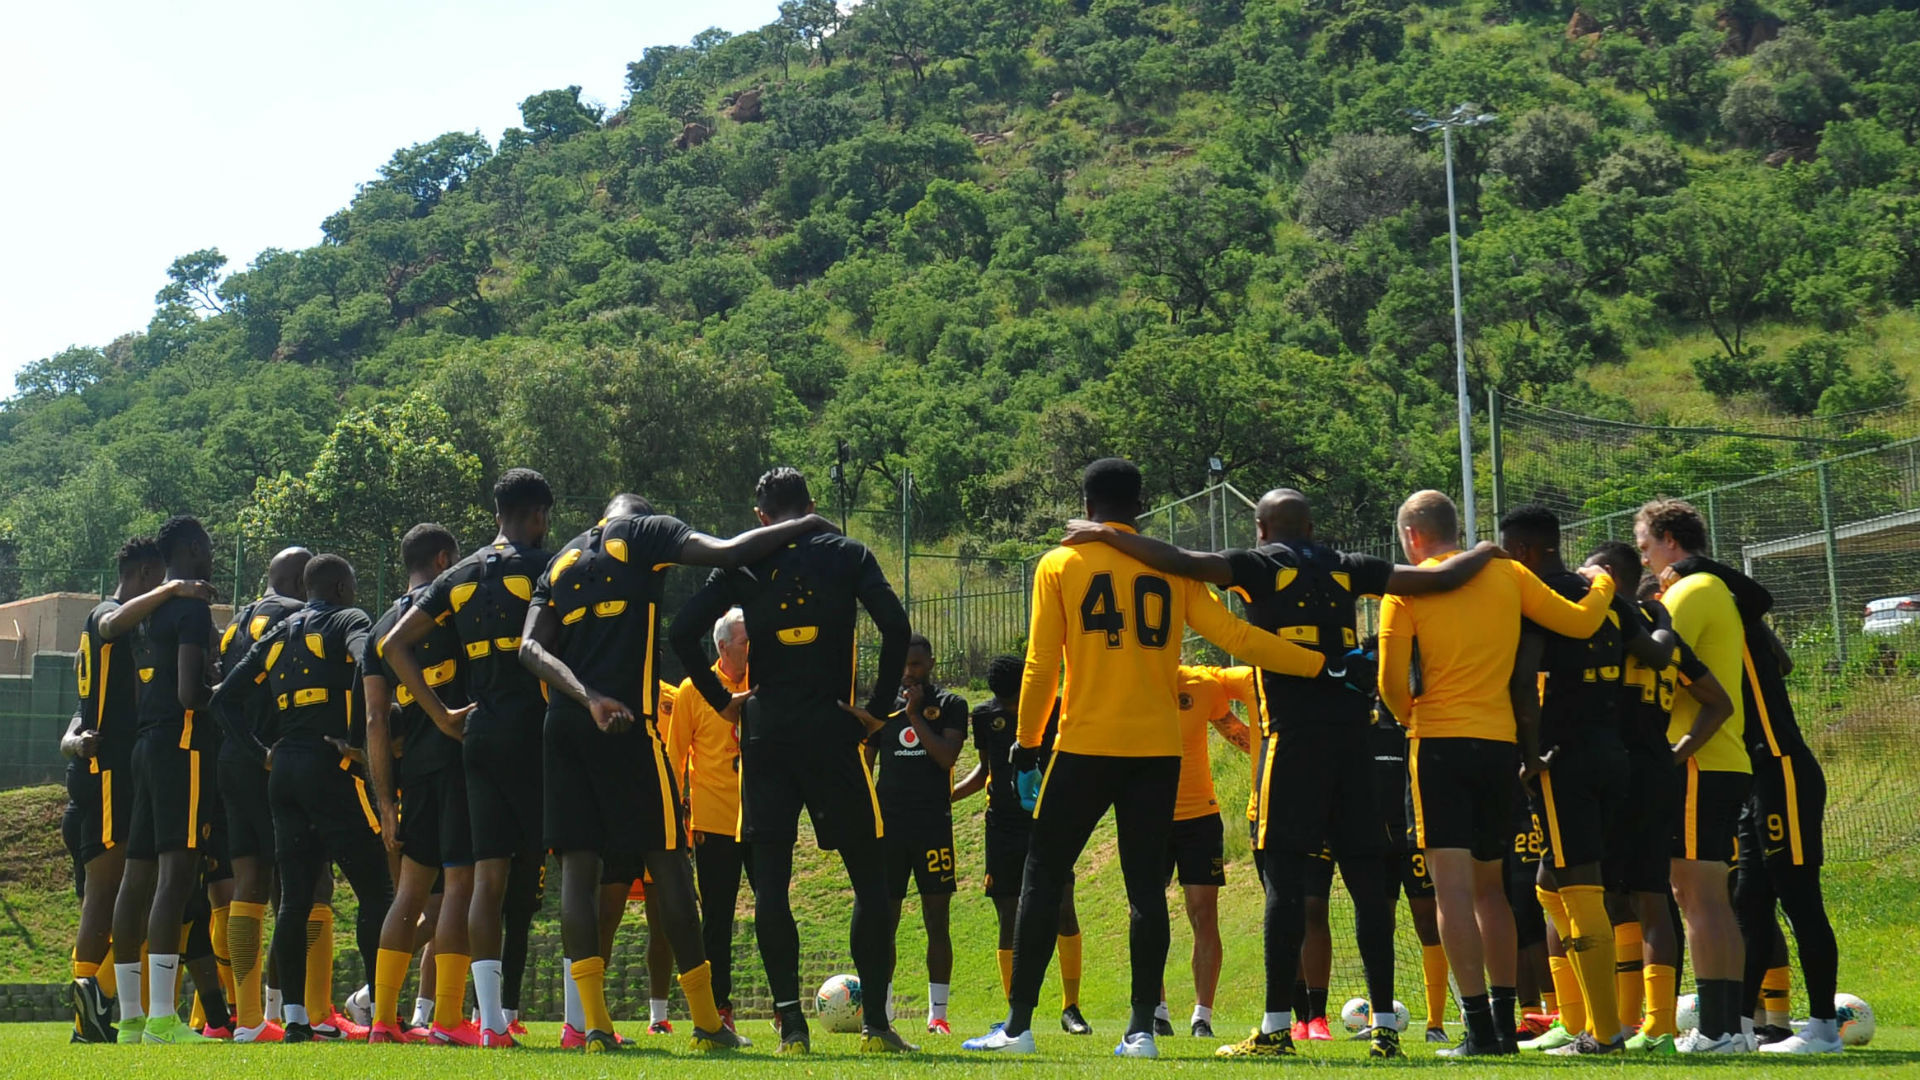 No Nurkovic? What options do Kaizer Chiefs have upfront ahead of the Mamelodi Sundowns match